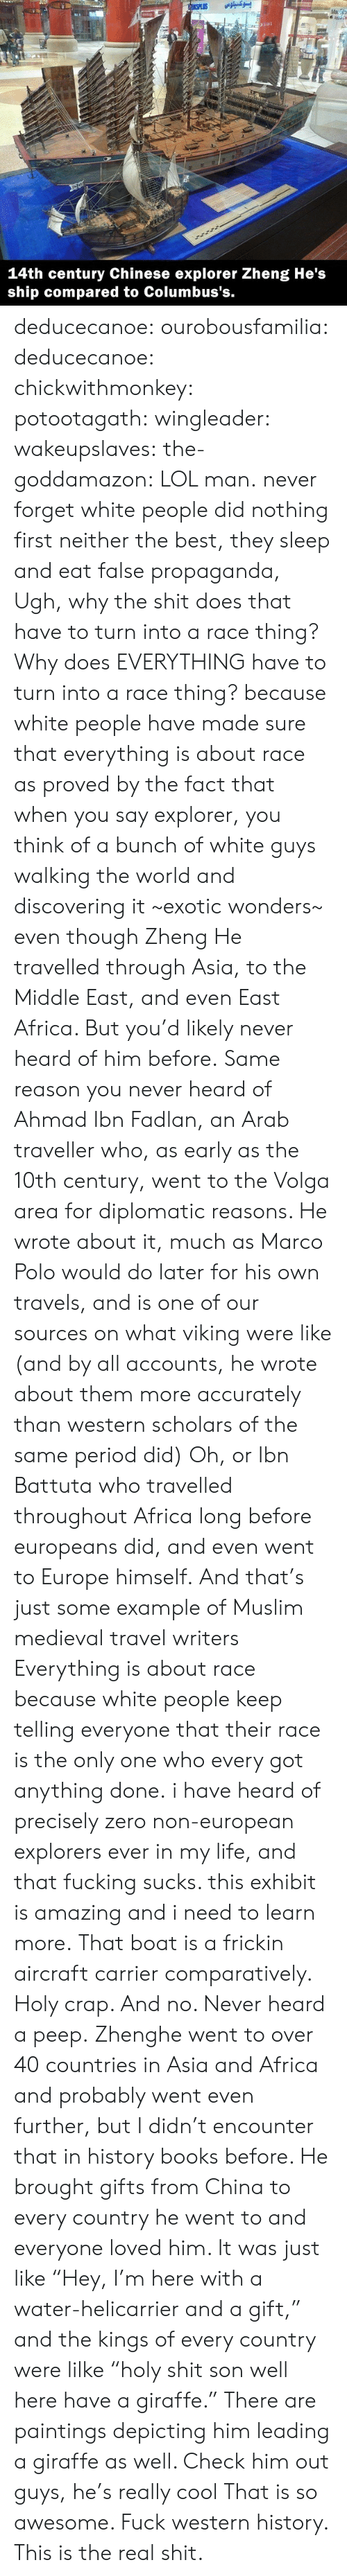 """Africa, Books, and Fucking: بوكسيلوس  SPLUS  Ma  A  83INT  14th century Chinese explorer Zheng He's  ship compared to Columbus's. deducecanoe: ourobousfamilia:  deducecanoe:  chickwithmonkey:  potootagath:  wingleader:  wakeupslaves:  the-goddamazon:  LOL man.  never forget white people did nothing first neither the best, they sleep and eat false propaganda,  Ugh, why the shit does that have to turn into a race thing? Why does EVERYTHING have to turn into a race thing?  because white people have made sure that everything is about race as proved by the fact that when you say explorer, you think of a bunch of white guys walking the world and discovering it ~exotic wonders~ even though Zheng He travelled through Asia, to the Middle East, and even East Africa. But you'd likely never heard of him before. Same reason you never heard of Ahmad Ibn Fadlan, an Arab traveller who, as early as the 10th century, went to the Volga area for diplomatic reasons. He wrote about it, much as Marco Polo would do later for his own travels, and is one of our sources on what viking were like (and by all accounts, he wrote about them more accurately than western scholars of the same period did) Oh, or Ibn Battuta who travelled throughout Africa long before europeans did, and even went to Europe himself. And that's just some example of Muslim medieval travel writers Everything is about race because white people keep telling everyone that their race is the only one who every got anything done.  i have heard of precisely zero non-european explorers ever in my life, and that fucking sucks. this exhibit is amazing and i need to learn more.  That boat is a frickin aircraft carrier comparatively. Holy crap. And no. Never heard a peep.  Zhenghe went to over 40 countries in Asia and Africa and probably went even further, but I didn't encounter that in history books before. He brought gifts from China to every country he went to and everyone loved him. It was just like """"Hey, I'm here with a water-hel"""